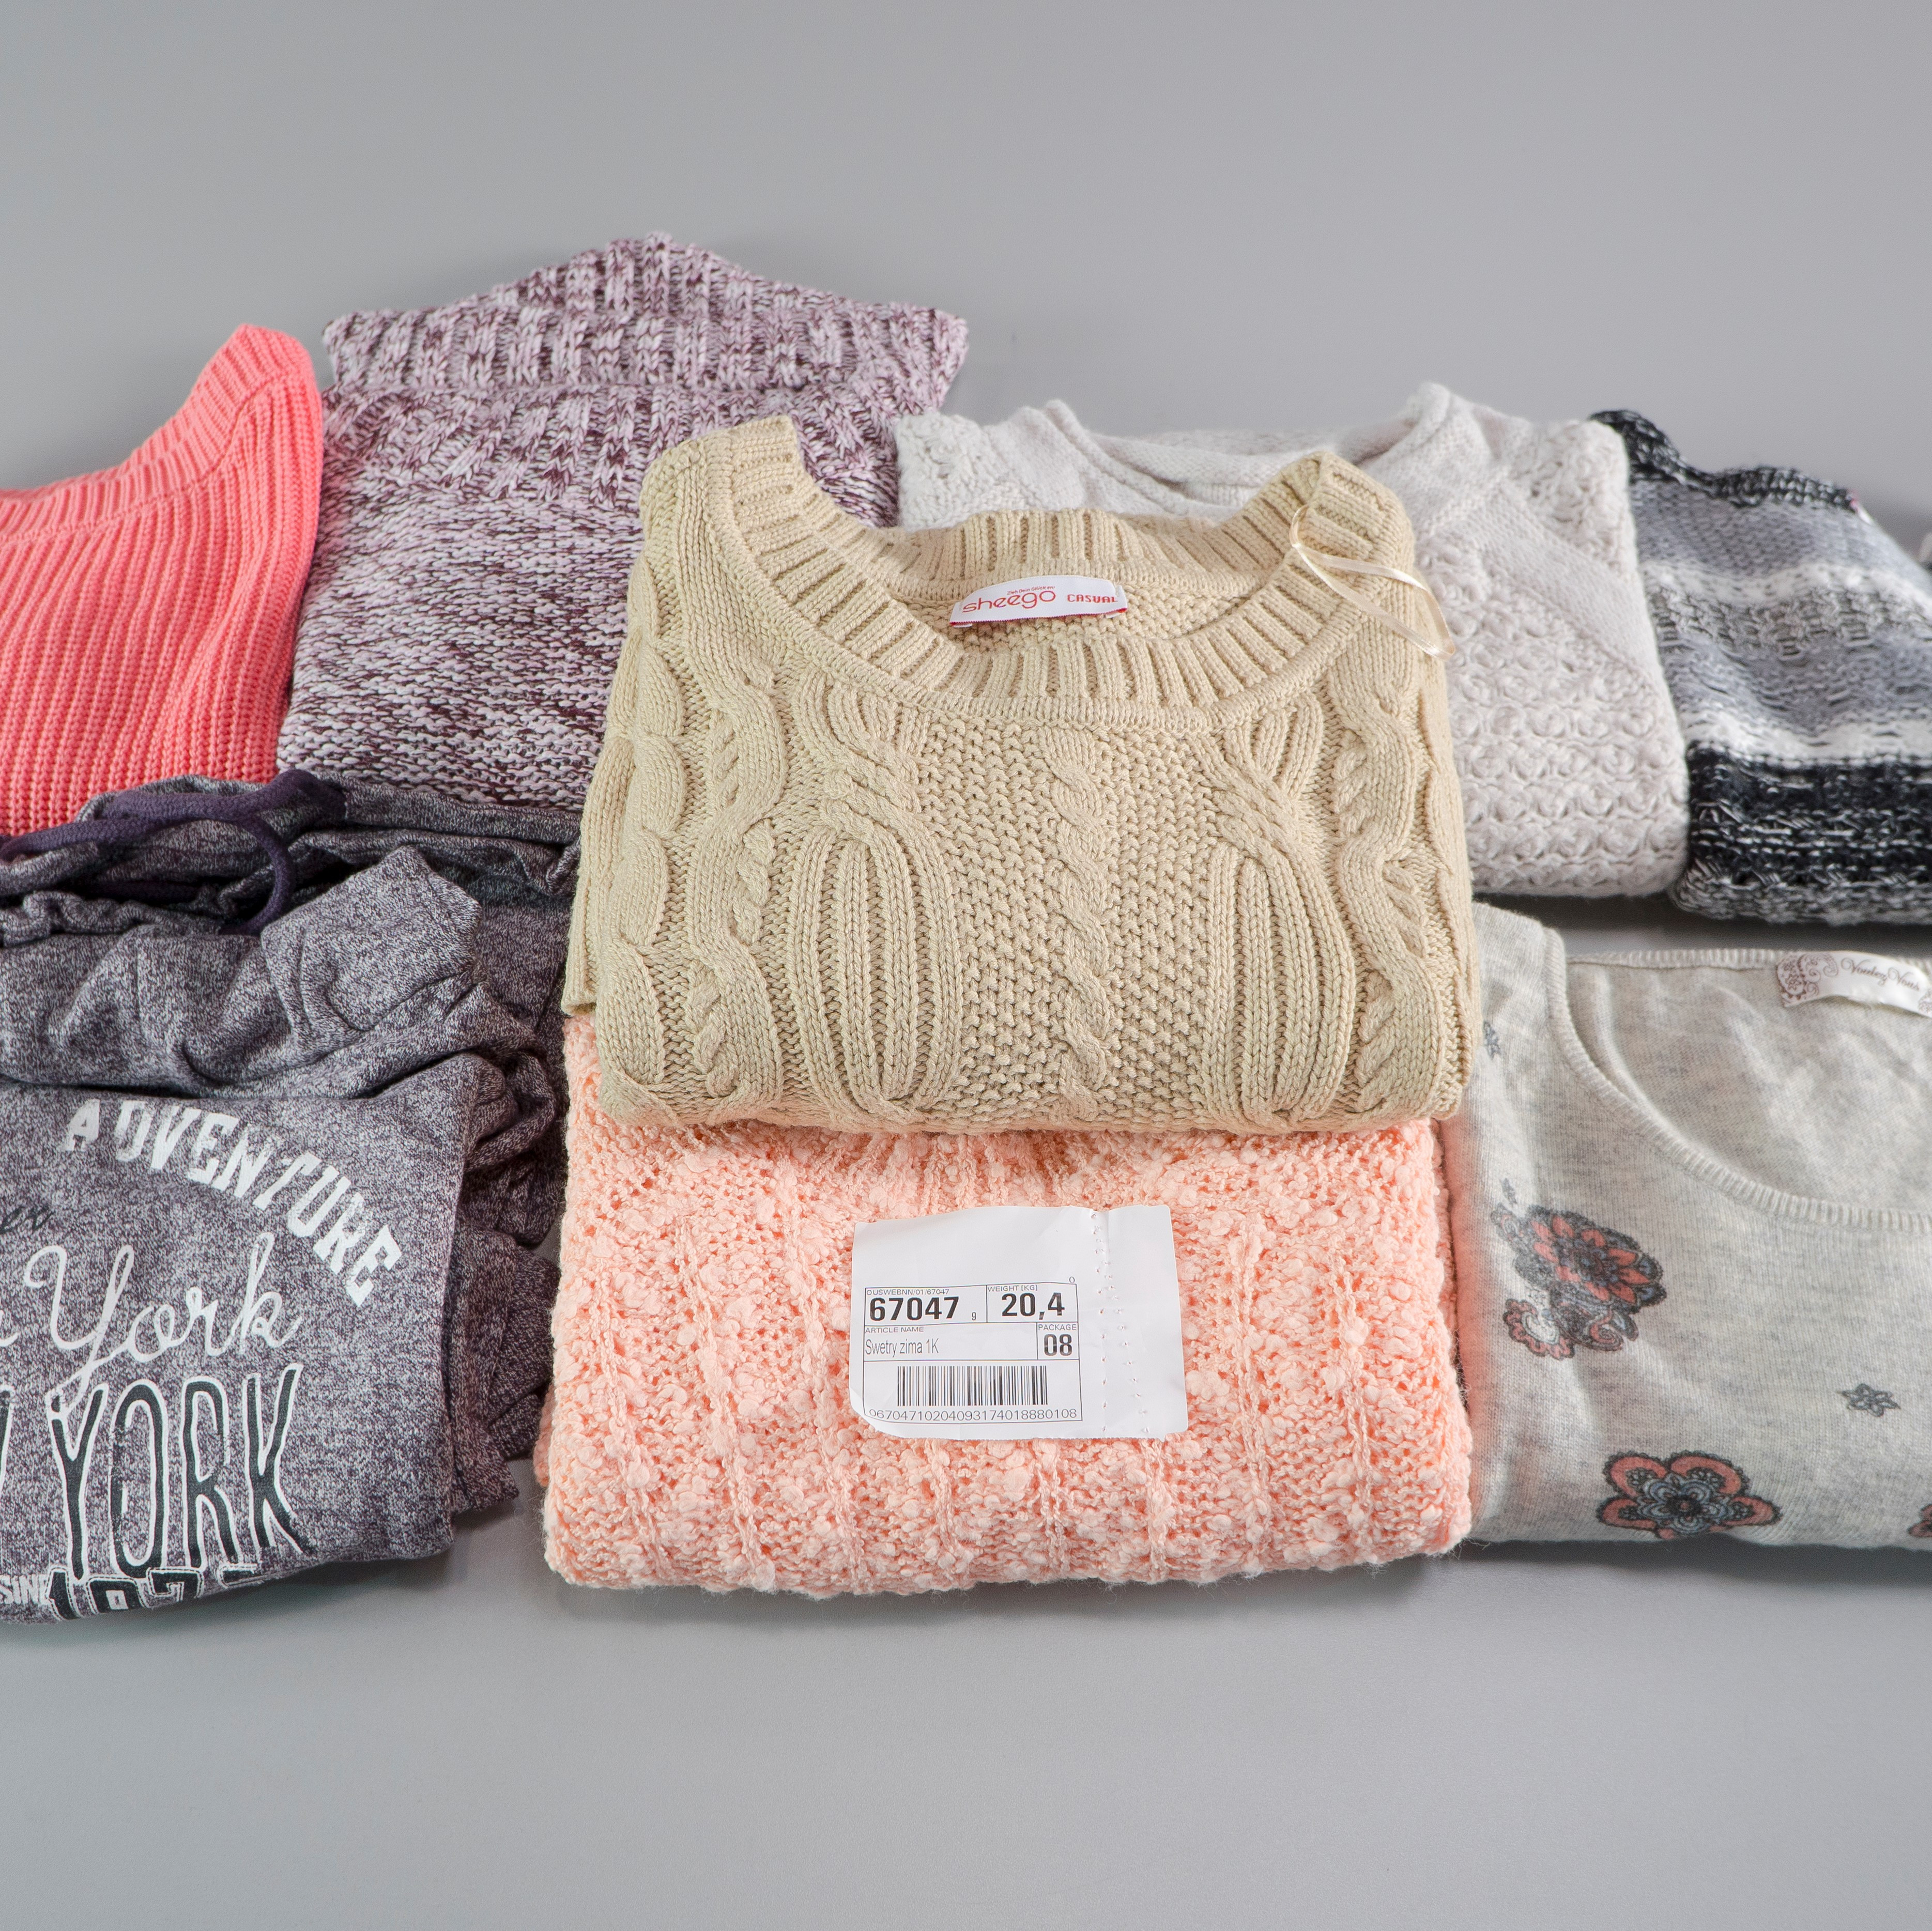 Winter sweaters | Second hand clothes used clothing and used clothes in bales